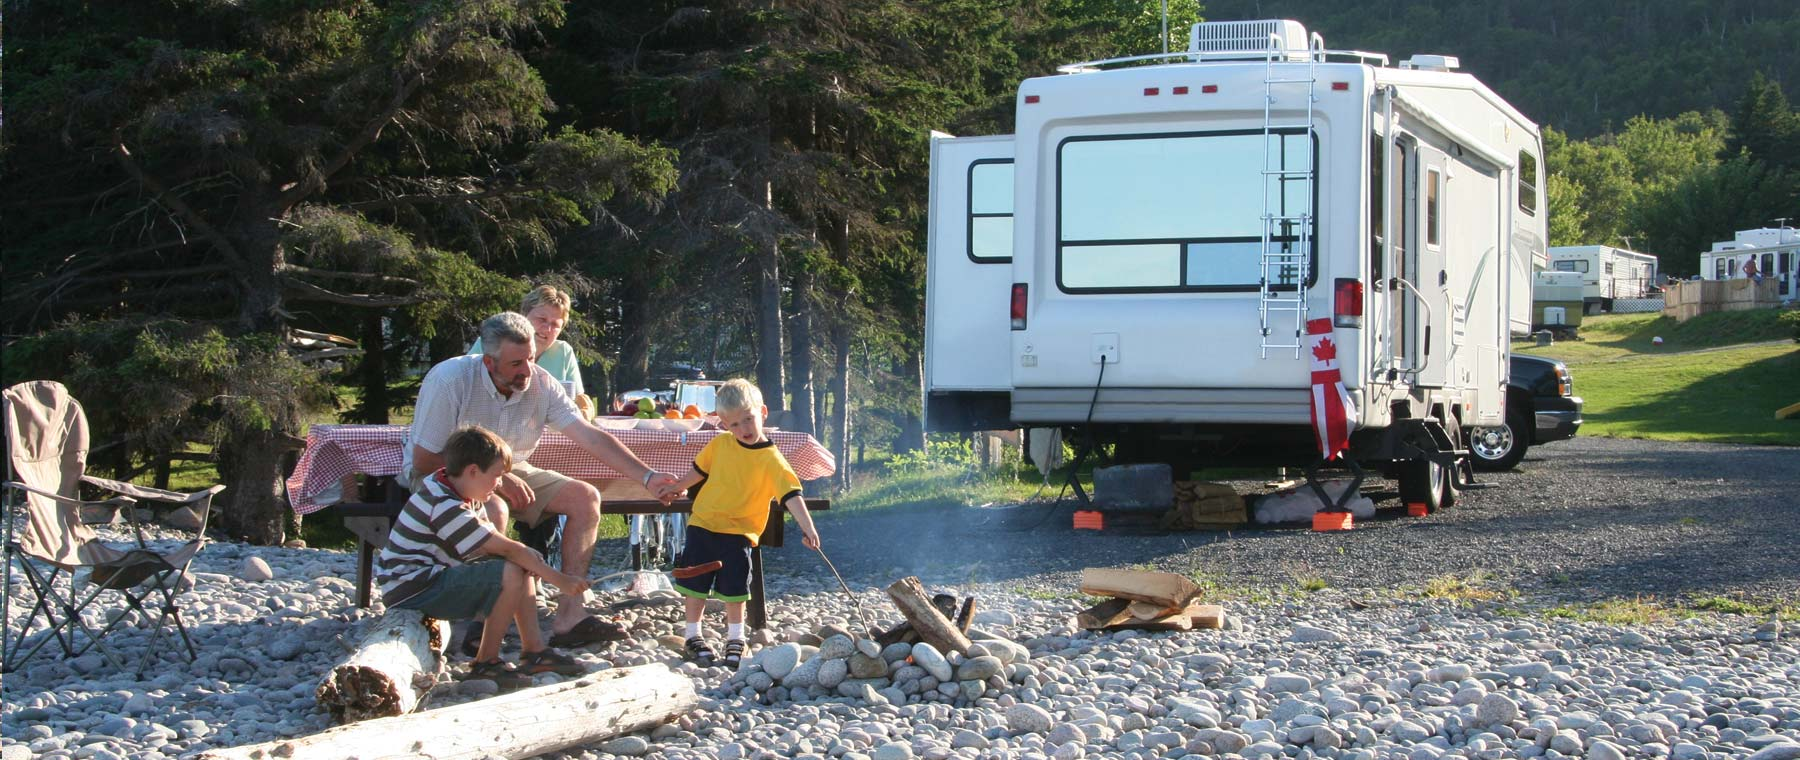 RV Parks and RV Campgrounds  Go RVing Canada